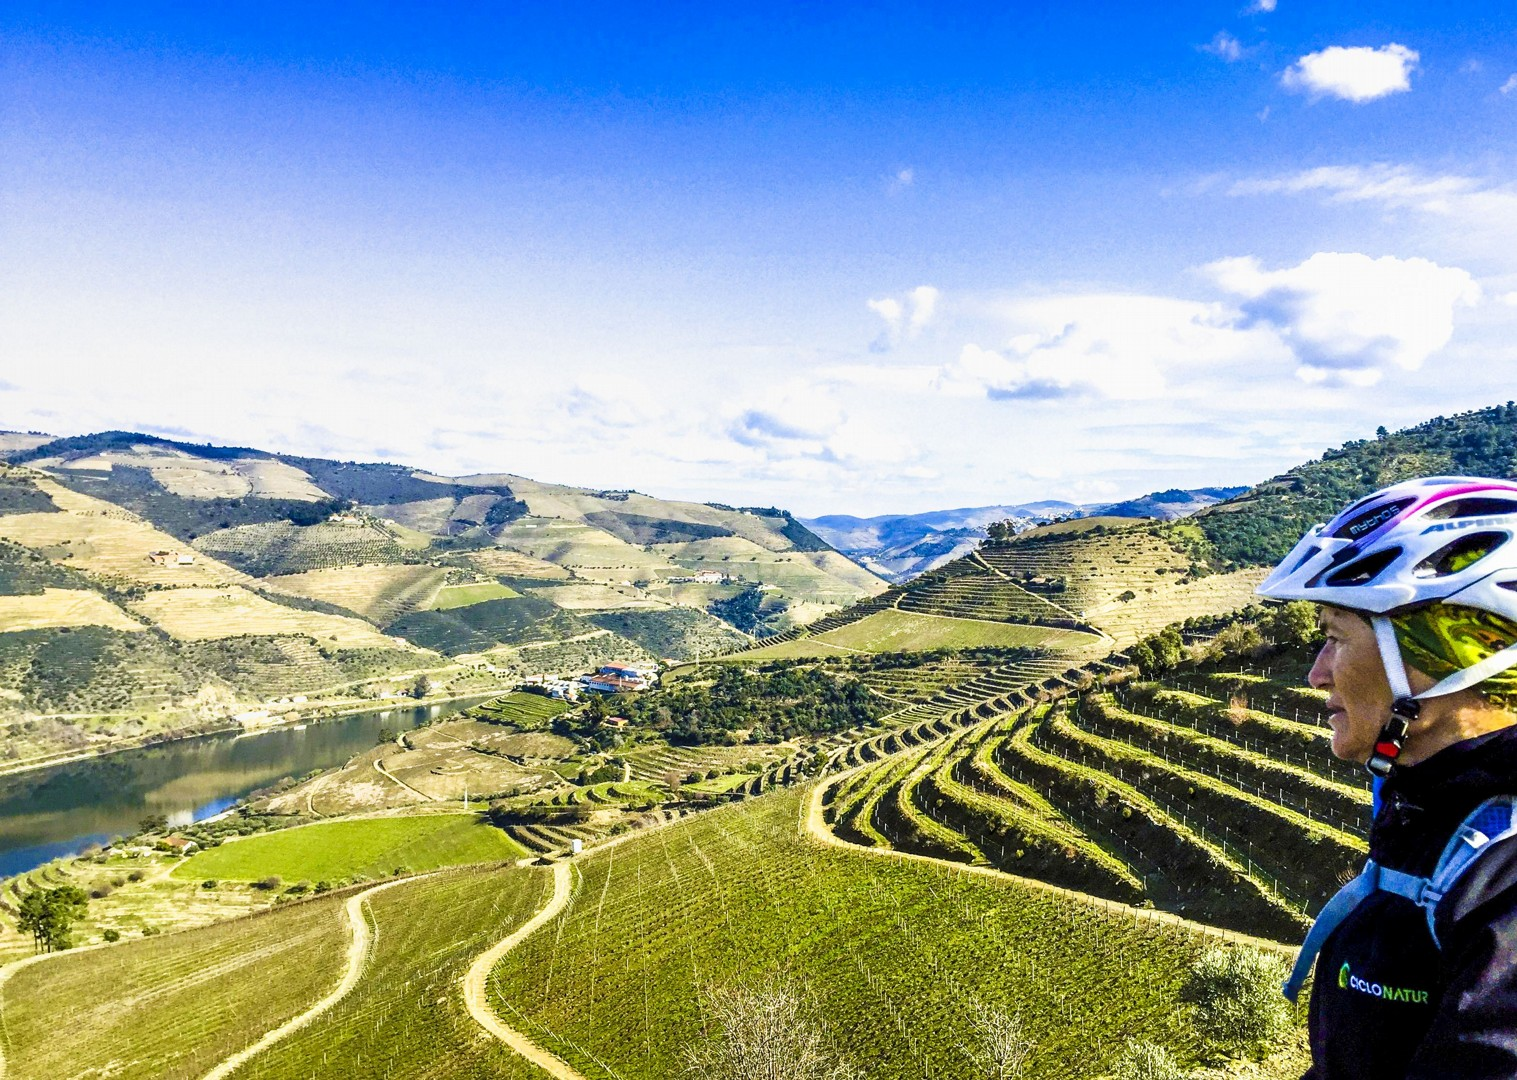 mountains-of-the-douro-port-and-wine-self-guided-cycling-tour-saddle-skedaddle.jpg - Portugal - Port and Wine - Guided Leisure Cycling Holiday - Leisure Cycling